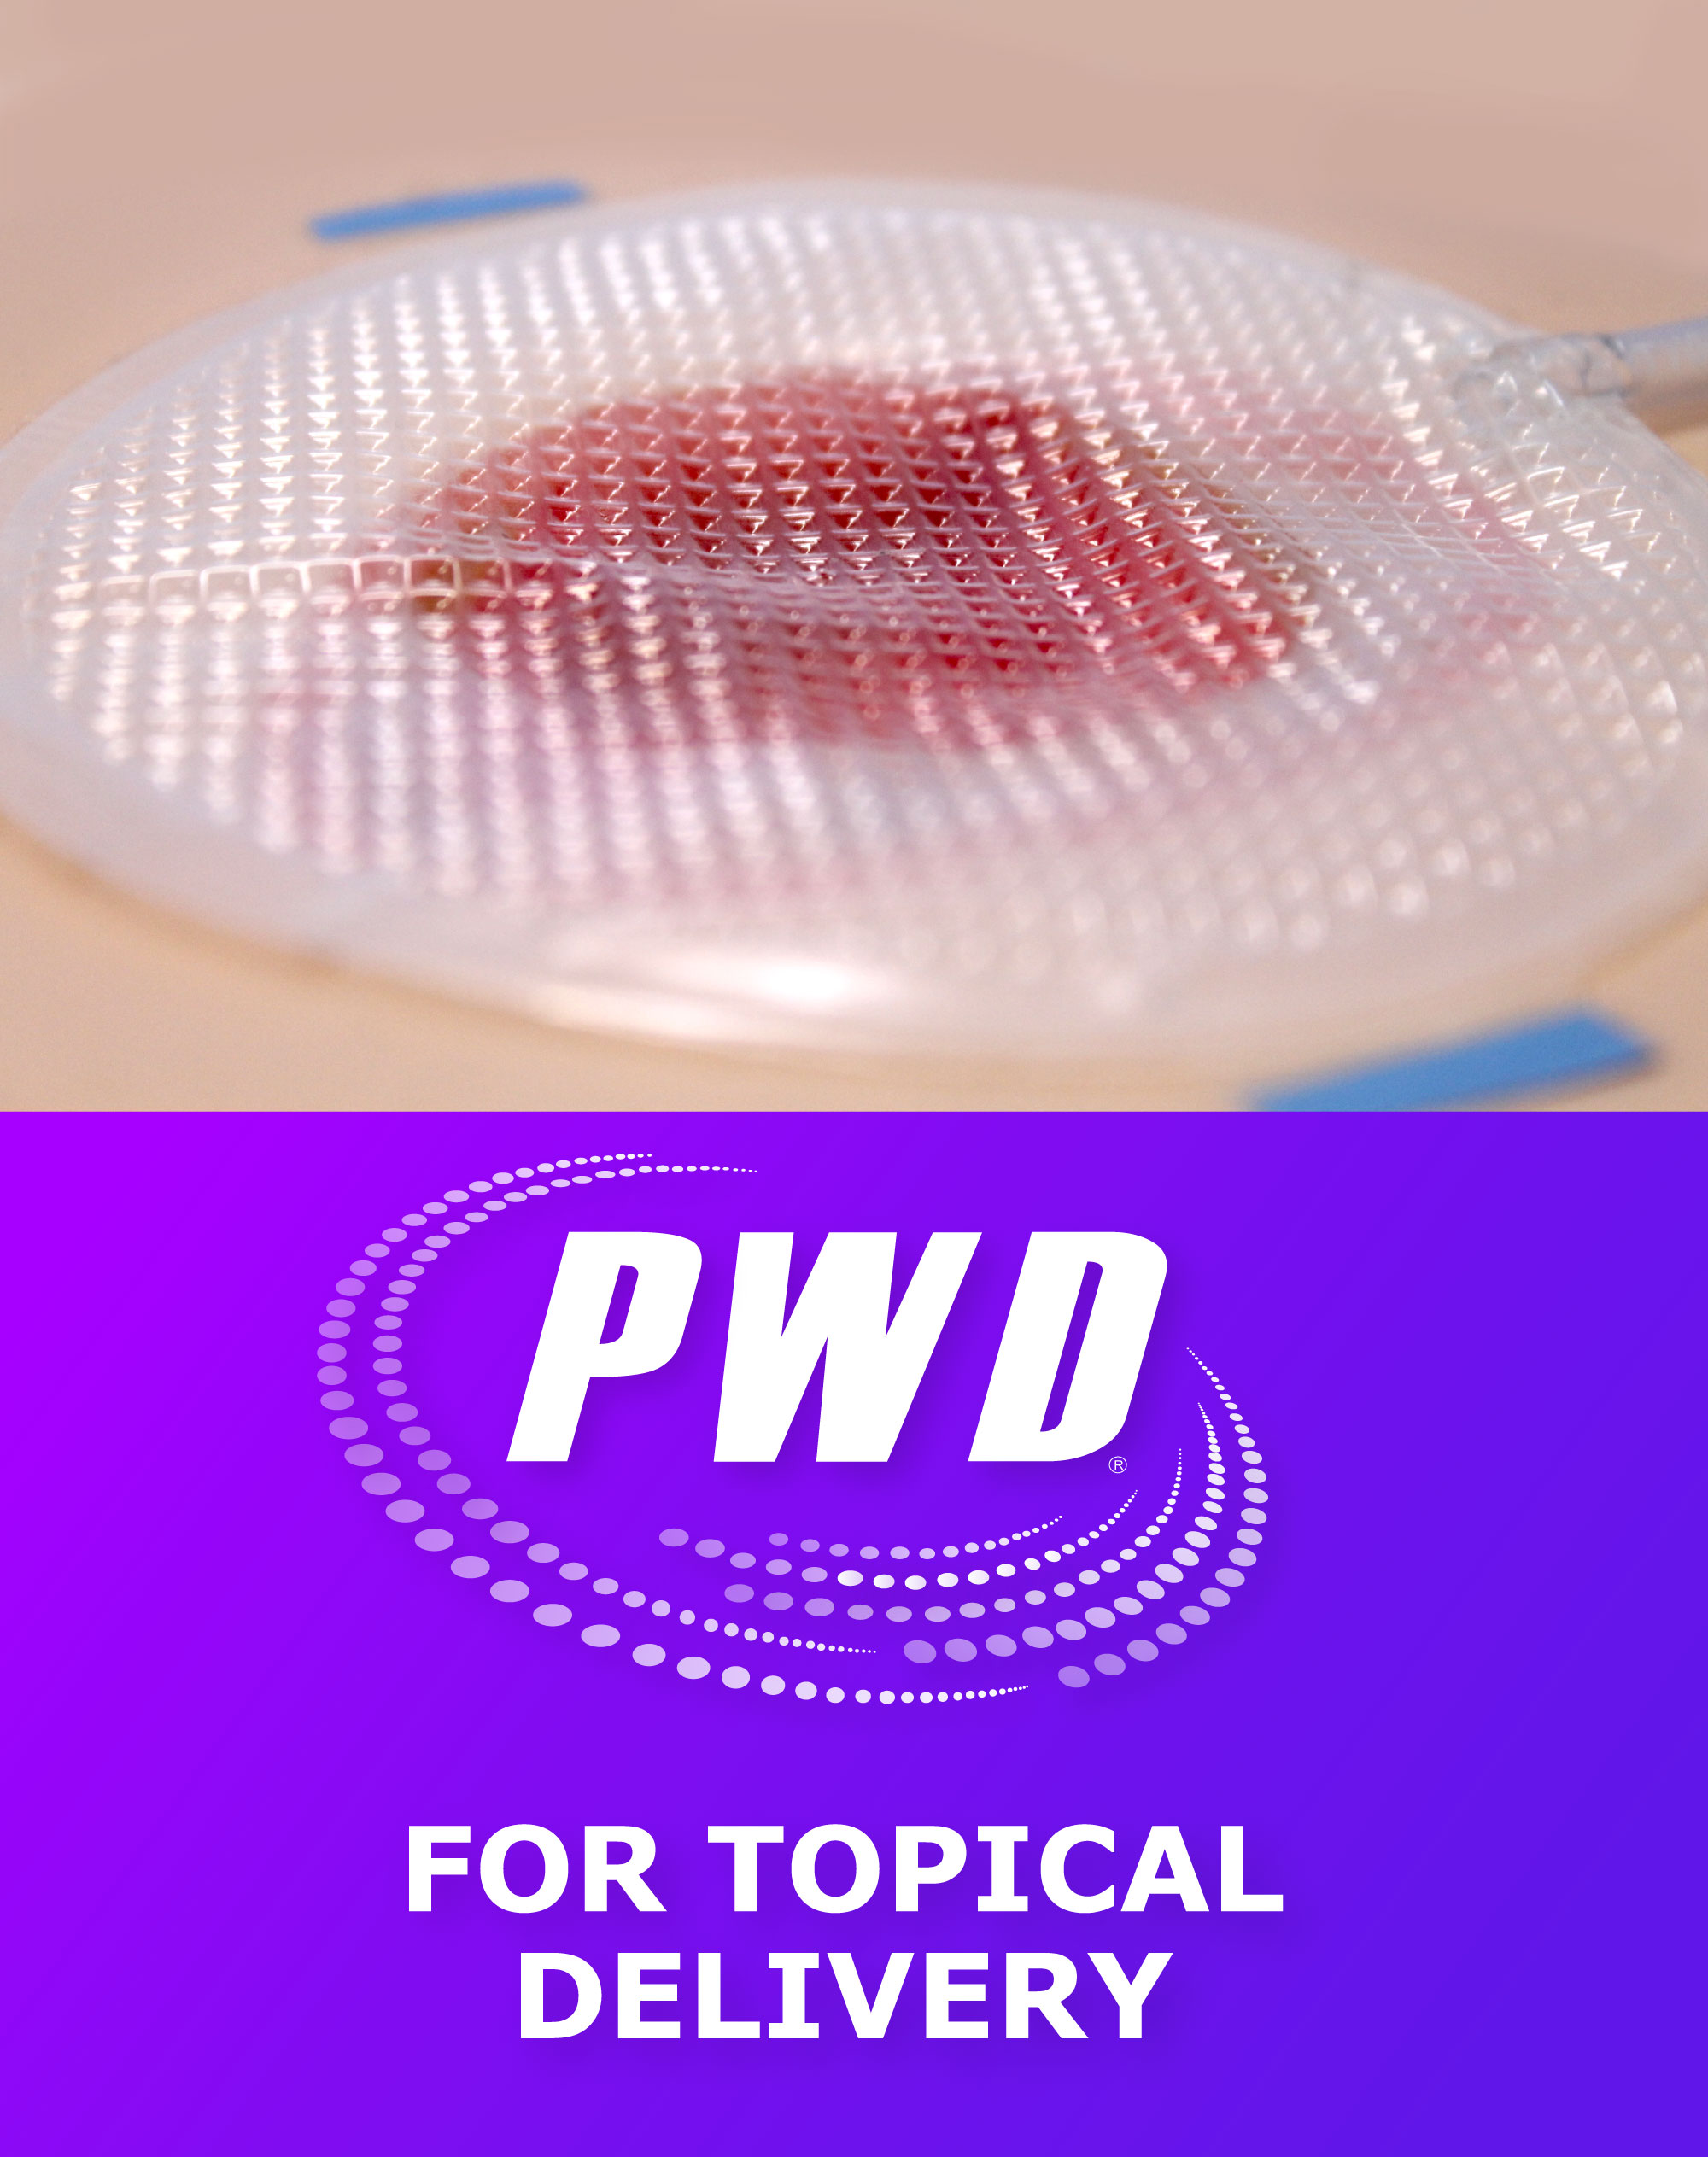 PWD - For Topical Delivery